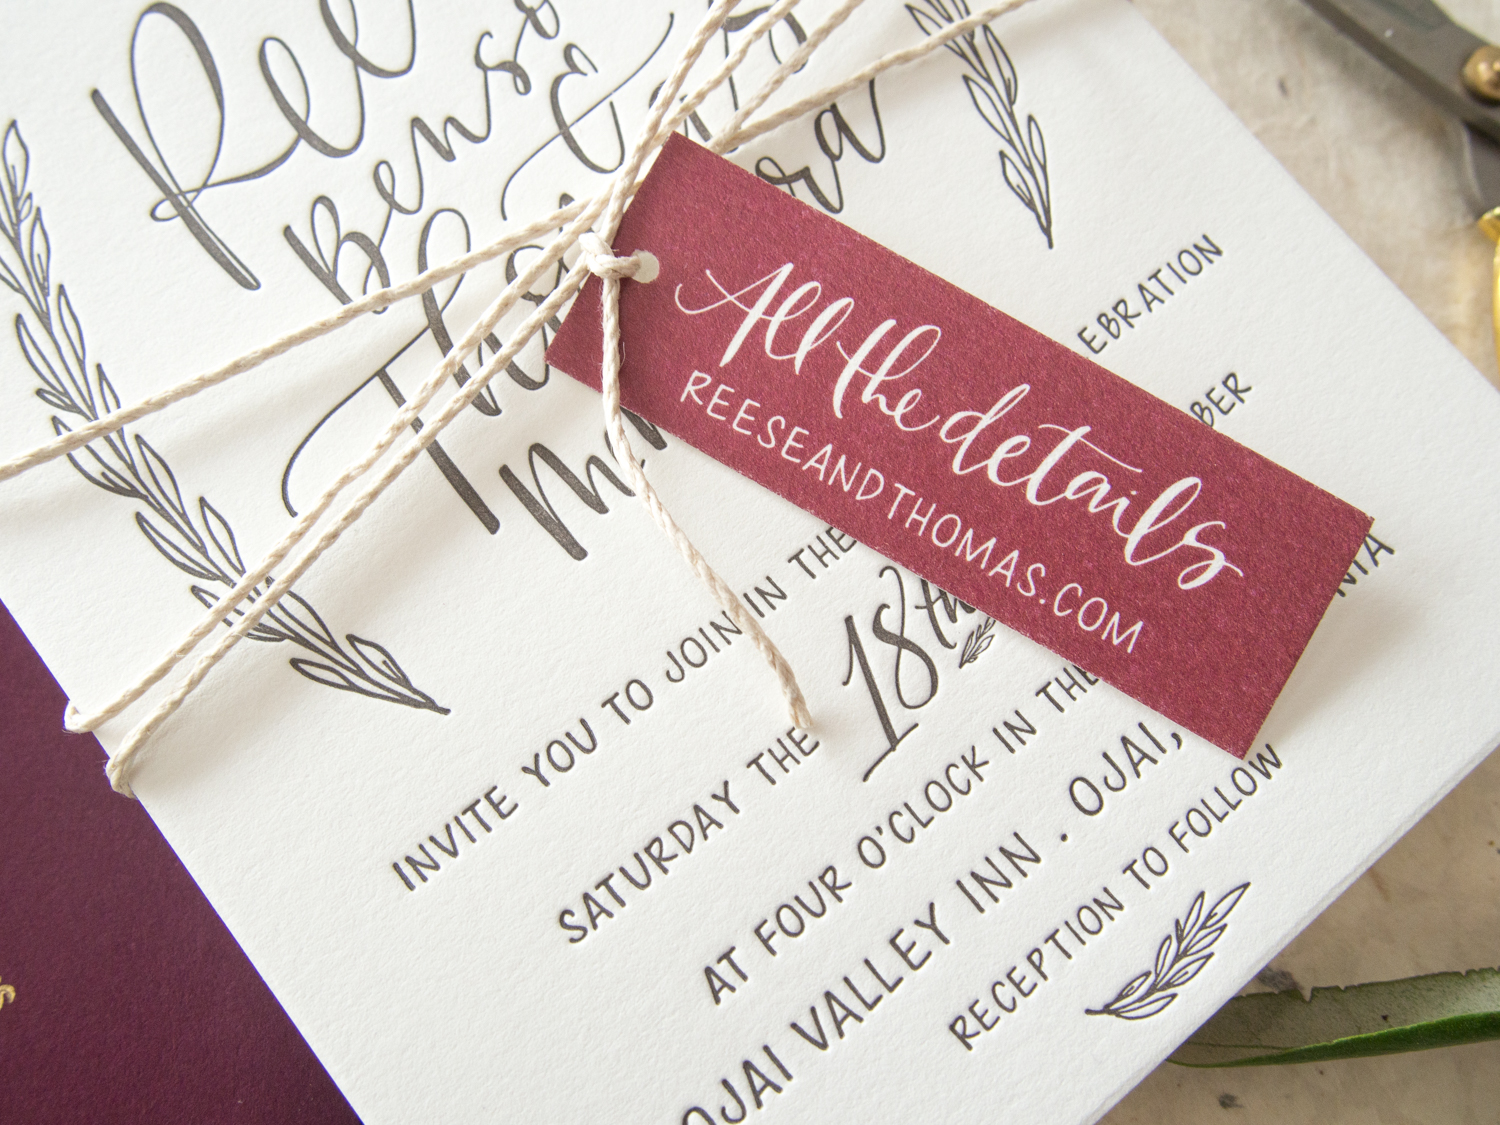 Rustic Wedding Invitation Details Tag from Bright Room Studio